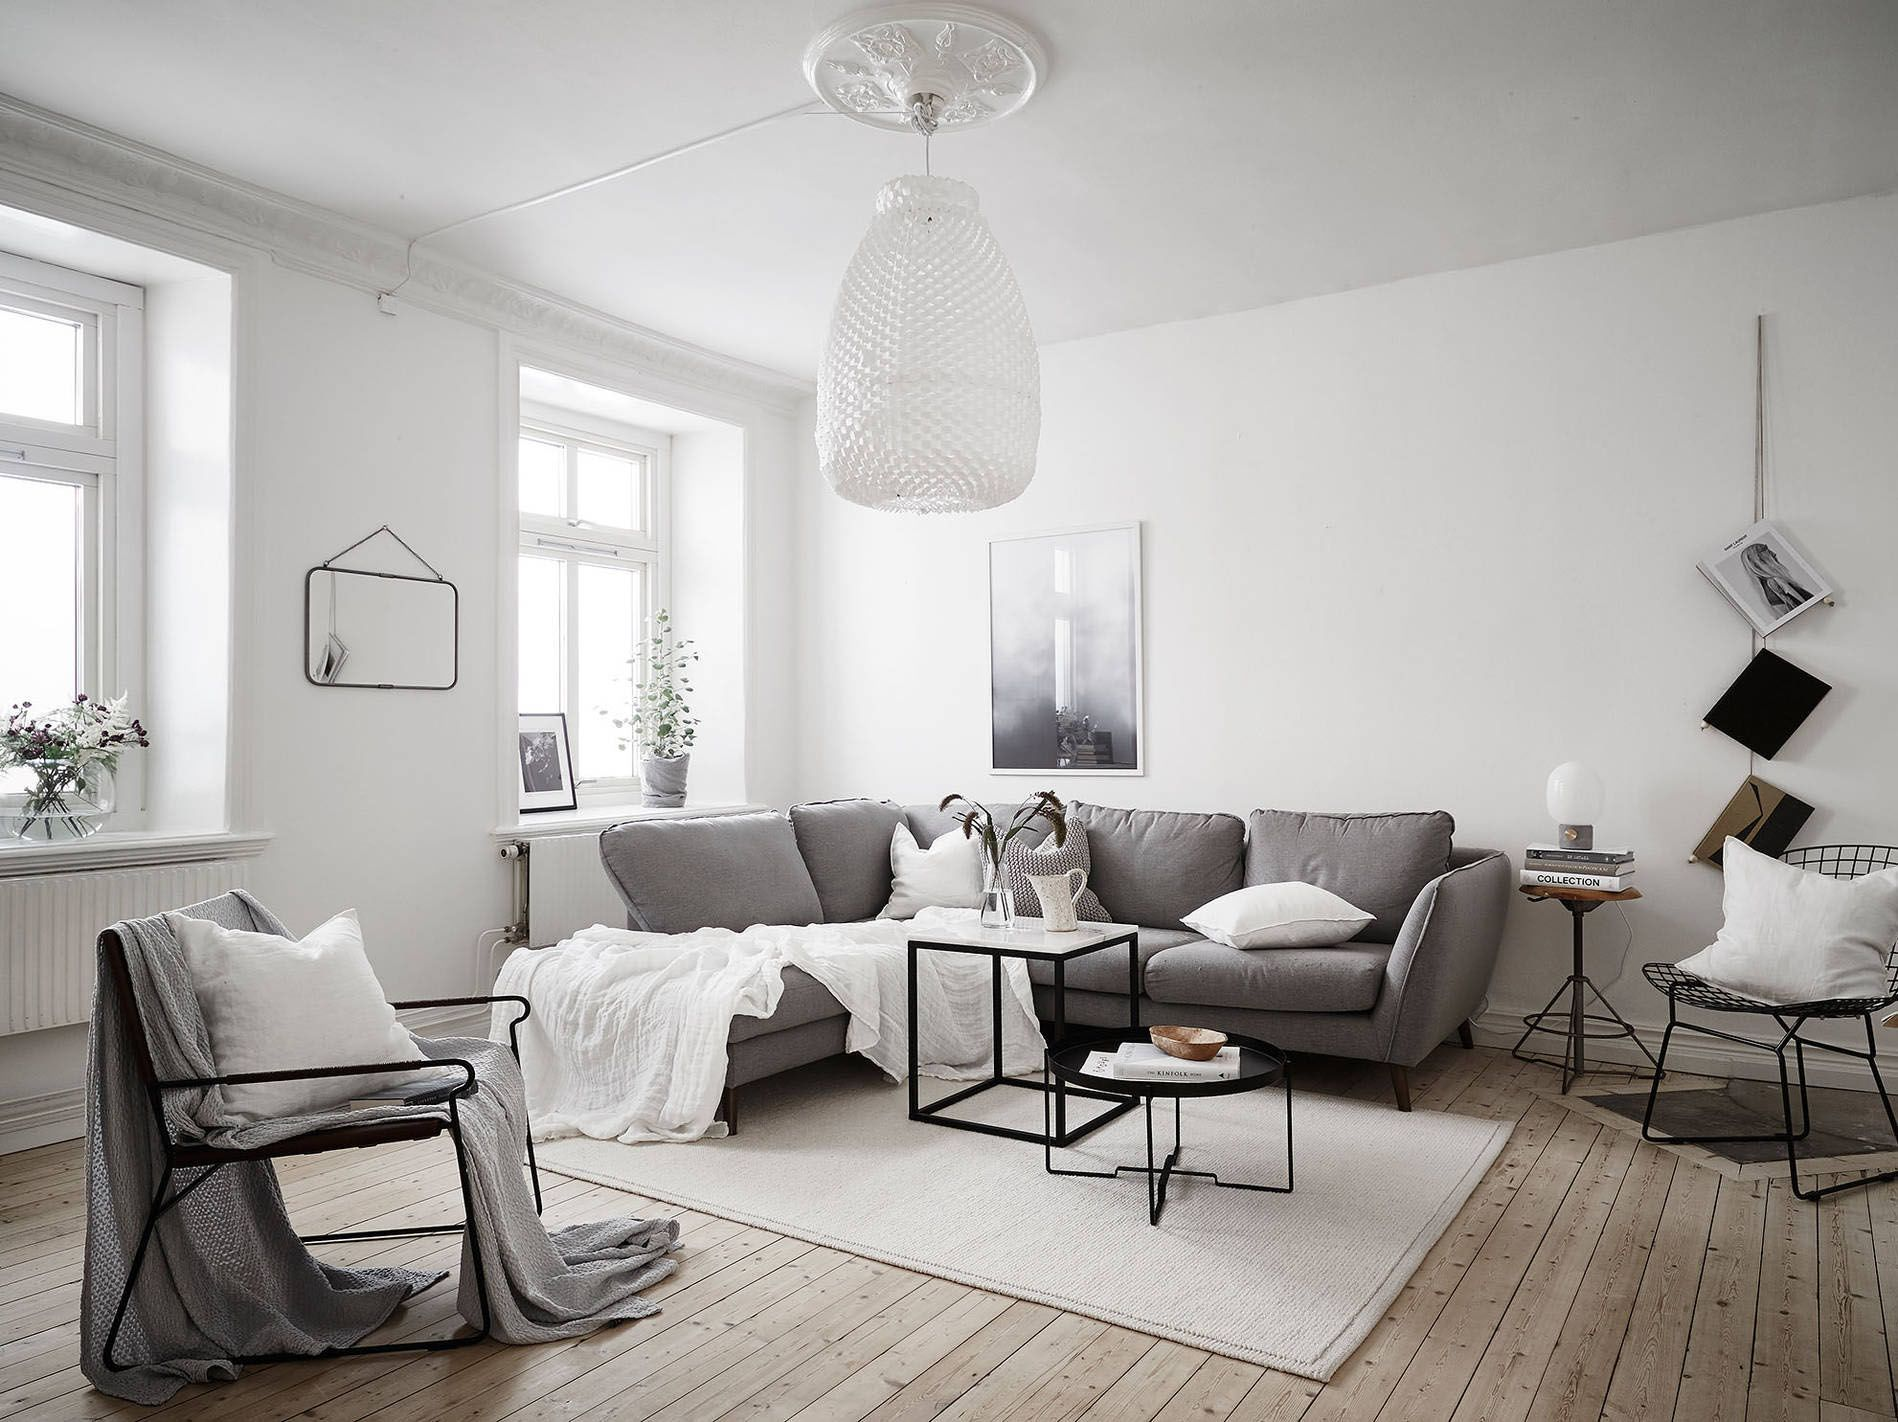 Nice Scandinavian Living Room With Large Pendant Lamp   Top 10 Tips For Adding  Scandinavian Style To